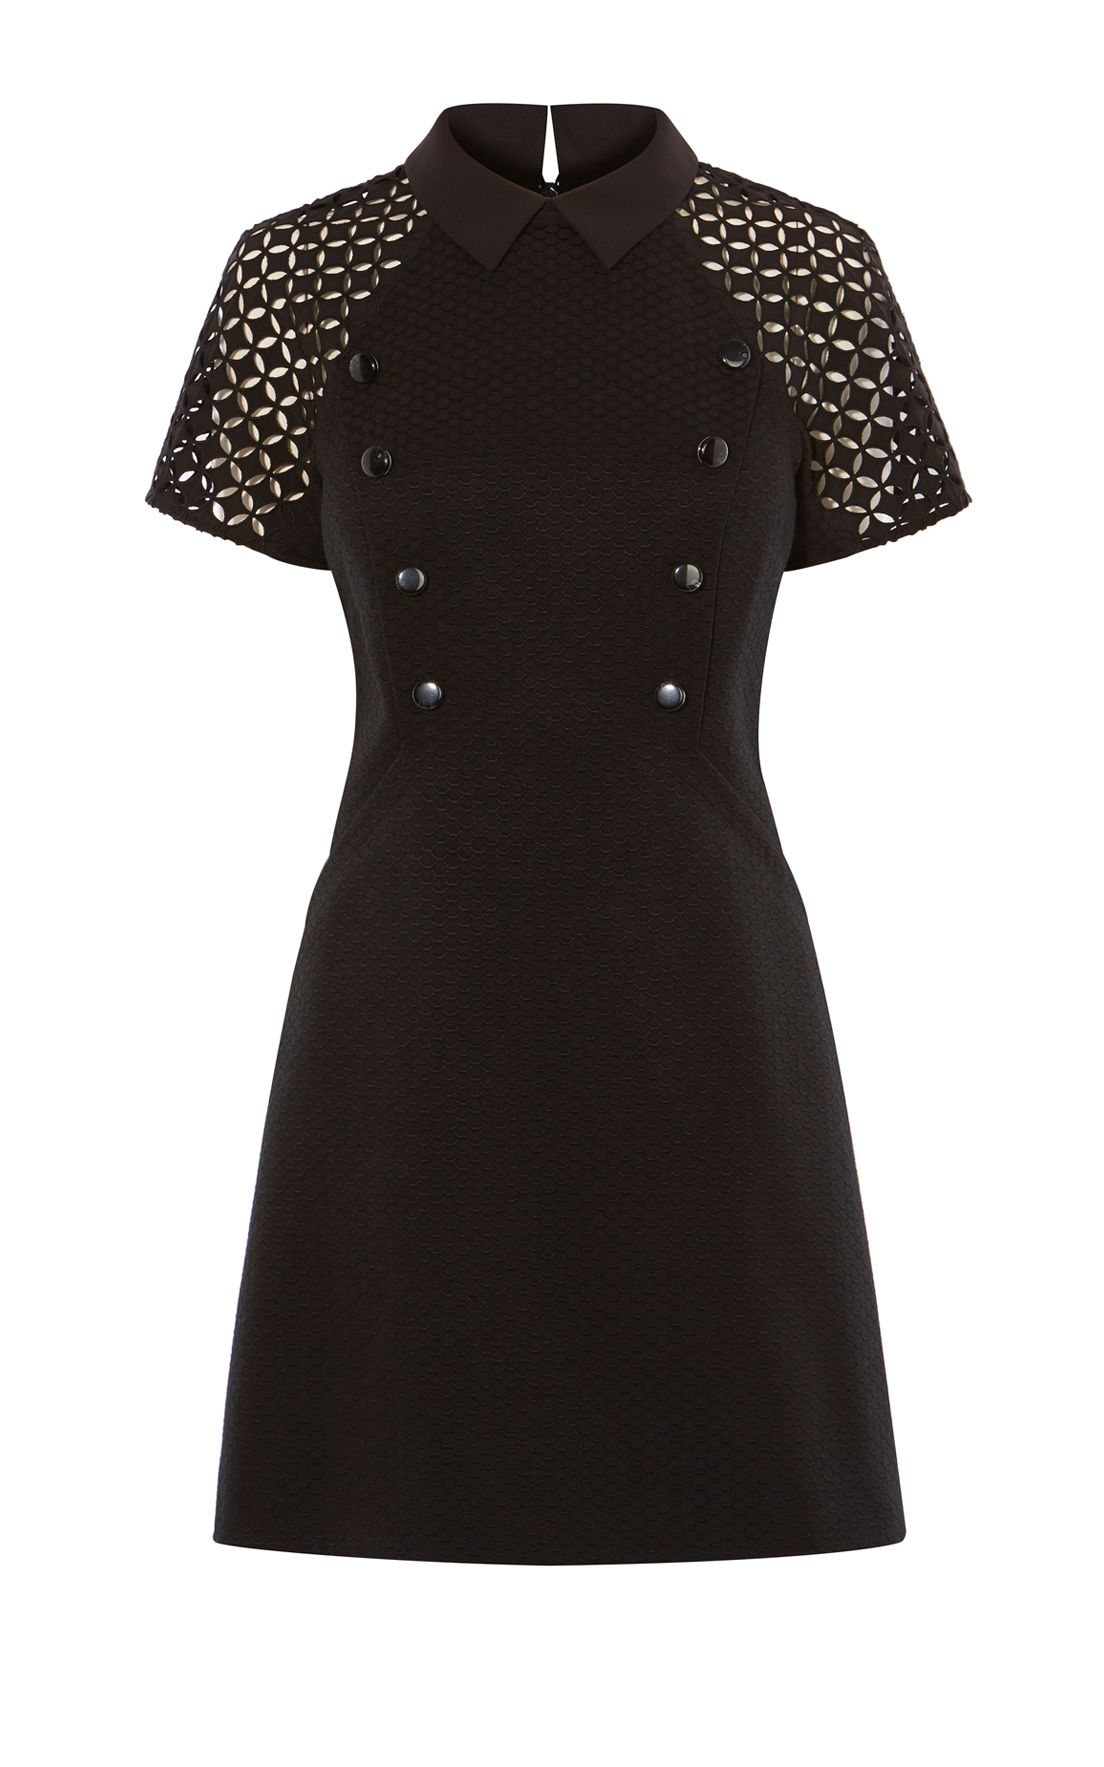 Karen Millen High-Neck Jacquard, Black